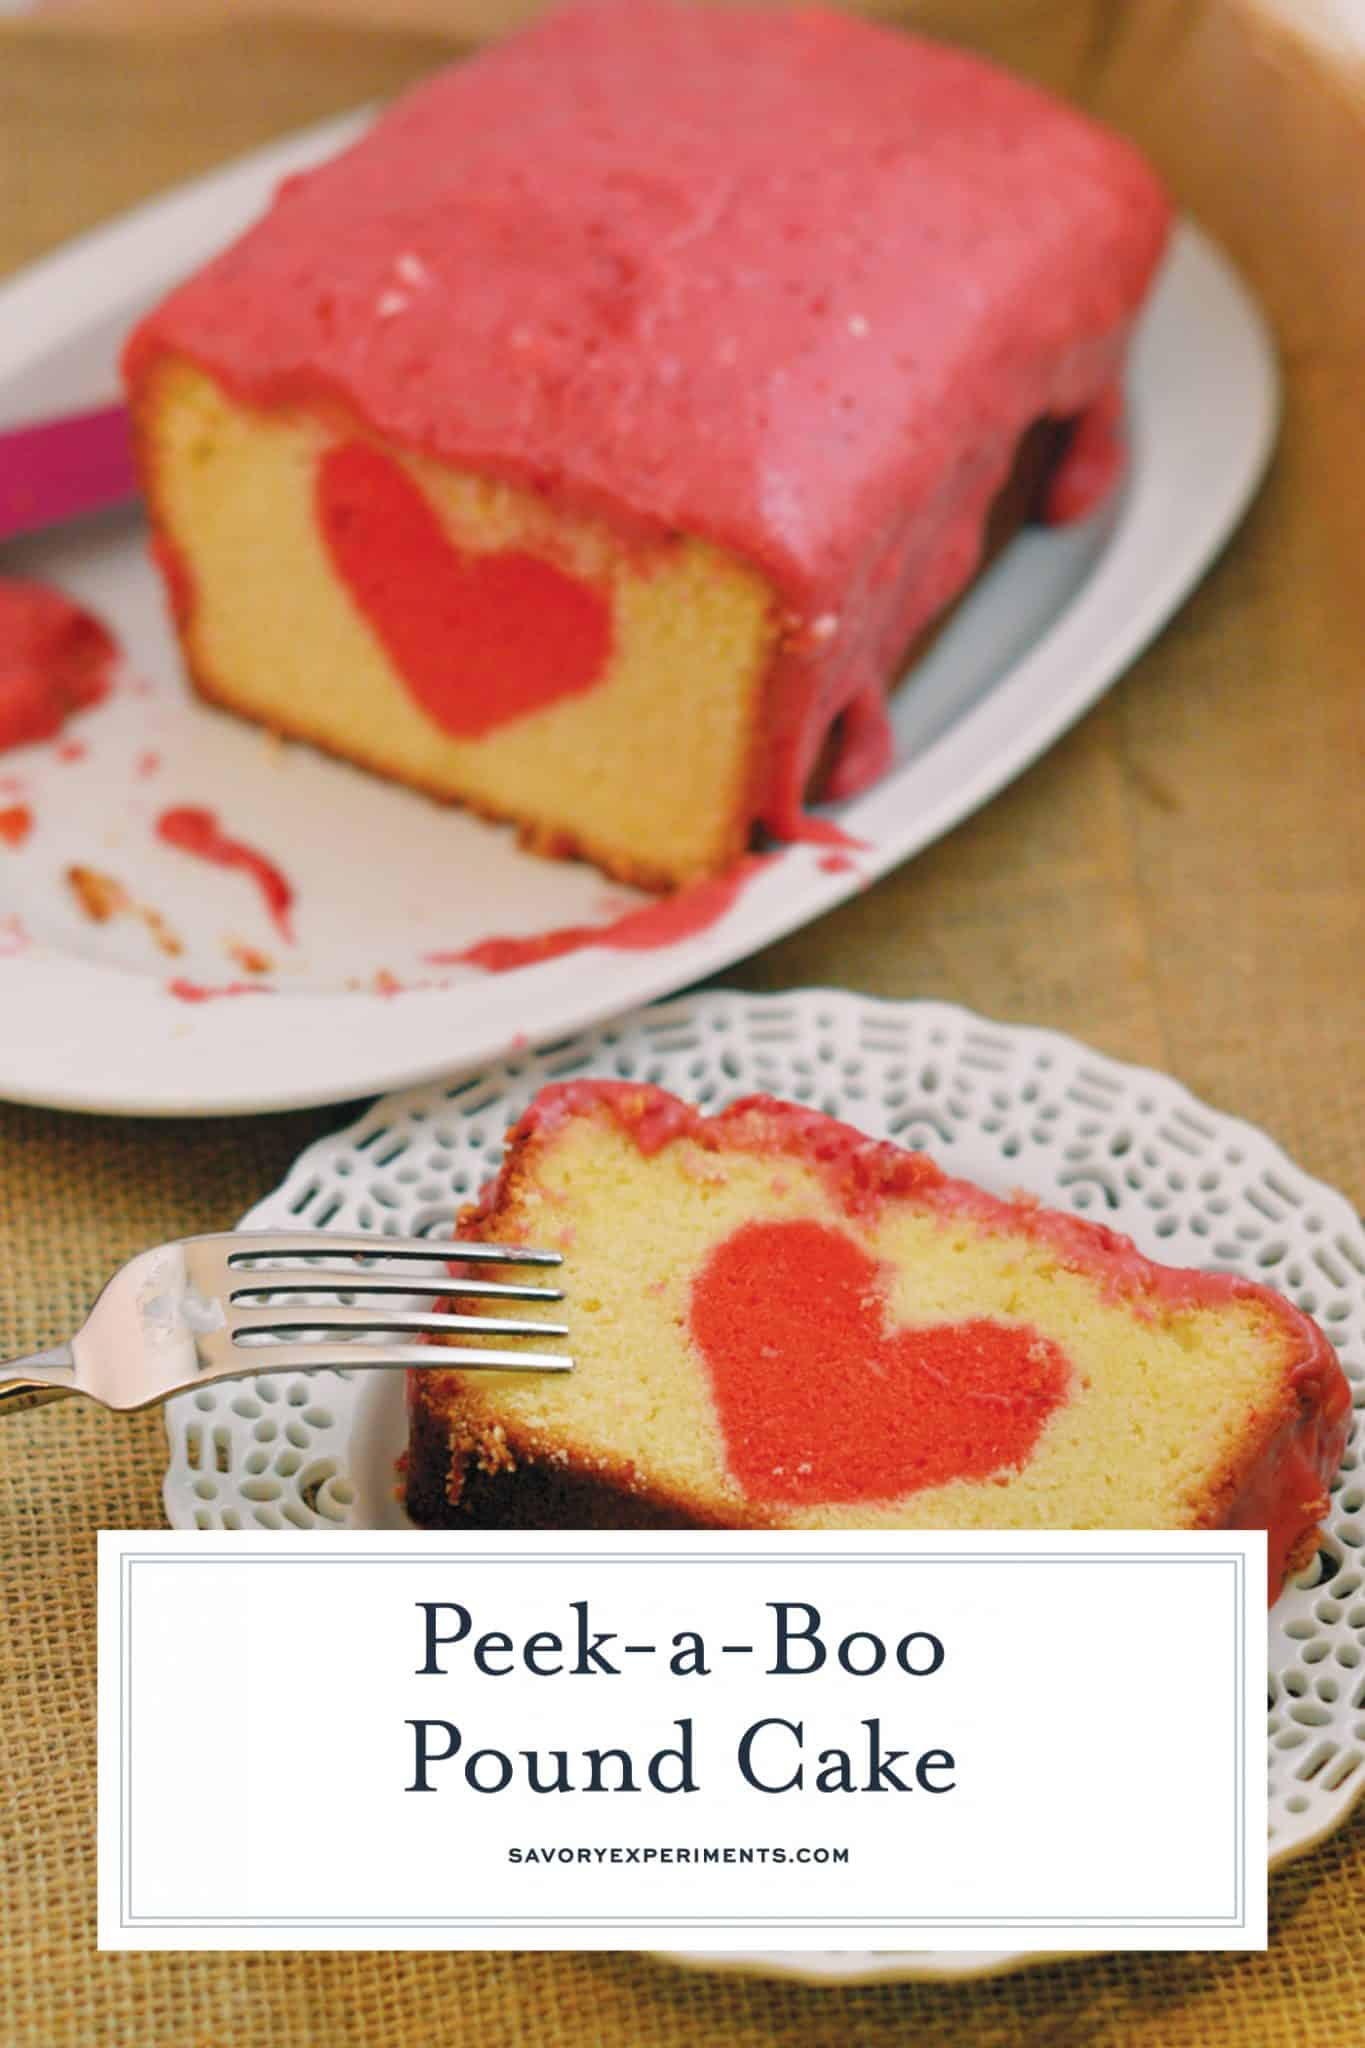 Peek-a-Boo Pound Cake is a vanilla pound cake with surprise center and raspberry cream cheese frosting using real raspberries! #valentinesdaycake #peekaboocake #poundcakerecipe www.savoryexperiments.com